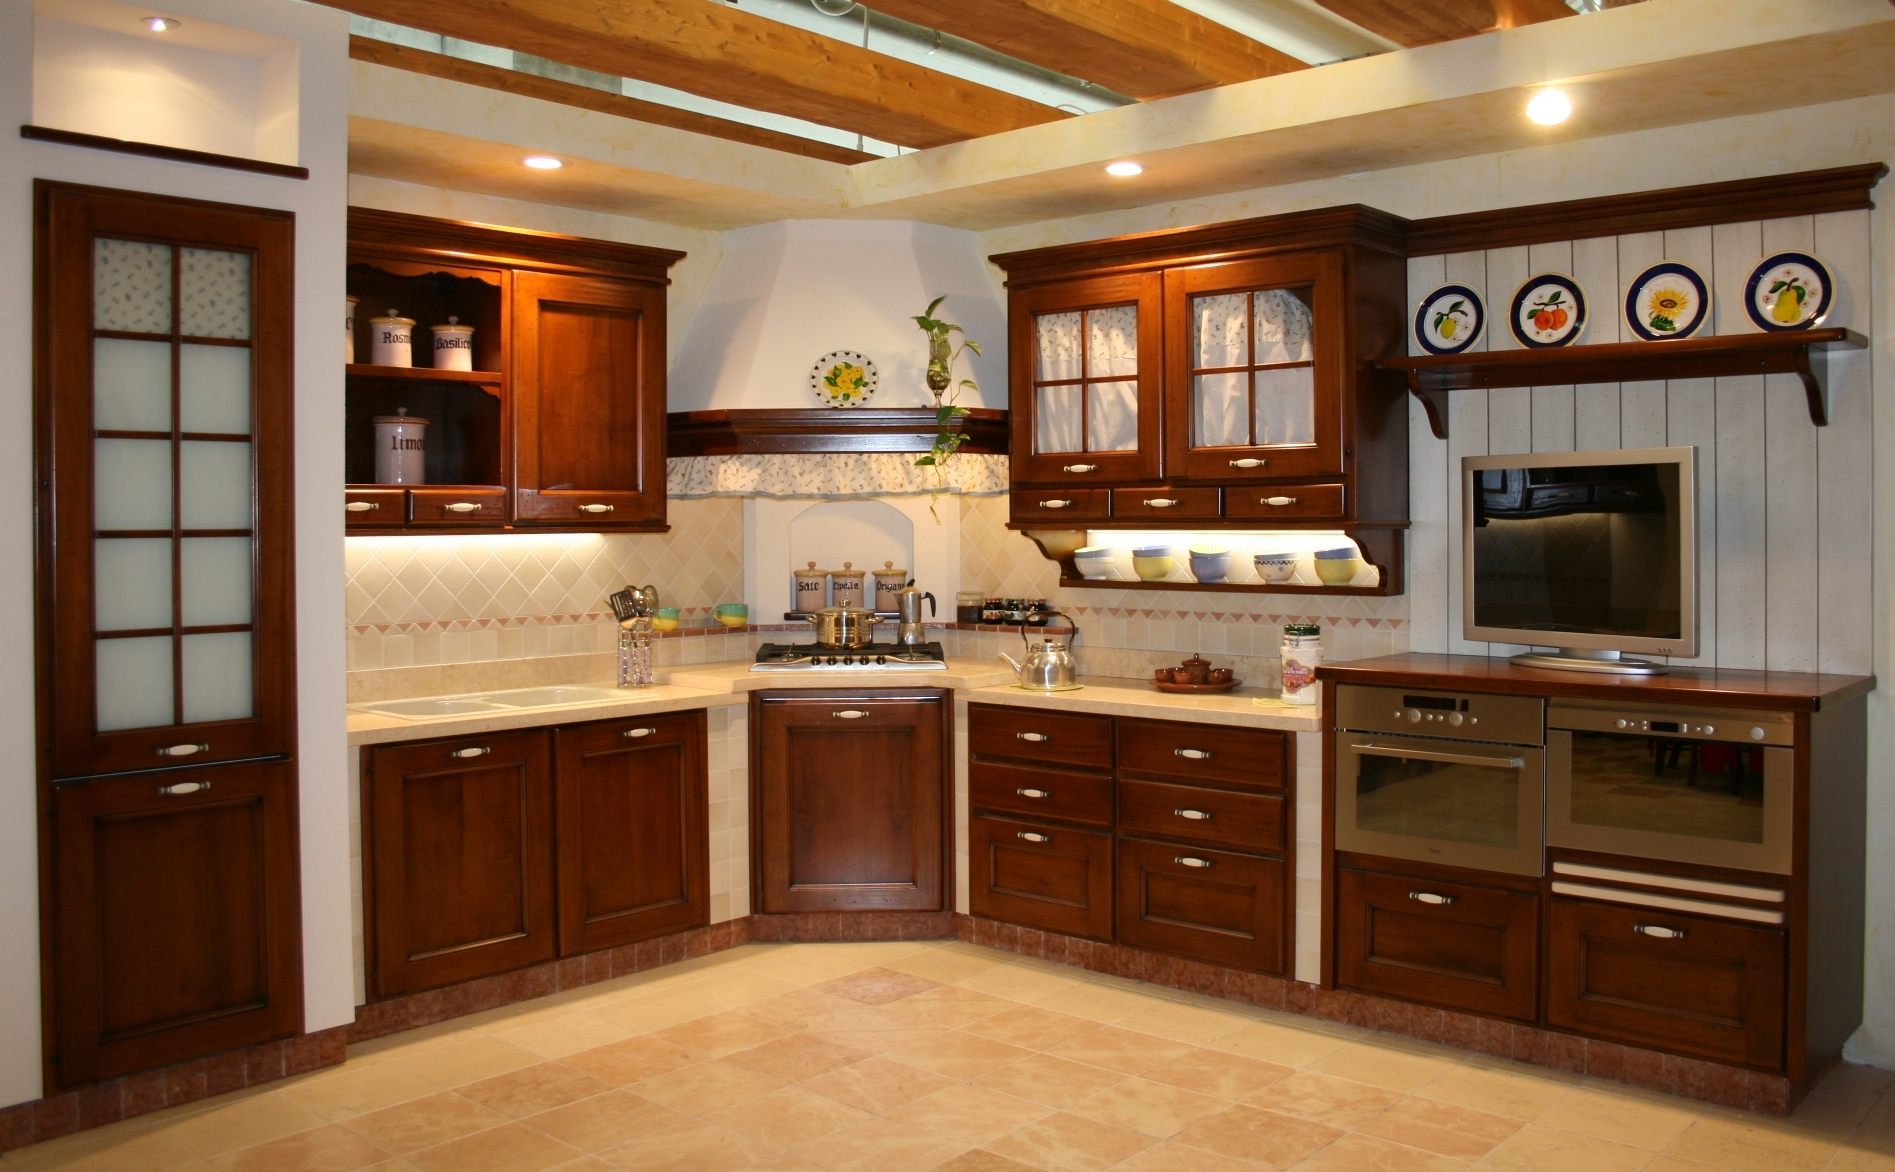 Awesome Cucine In Muratura Ad Angolo Pictures - bakeroffroad.us ...